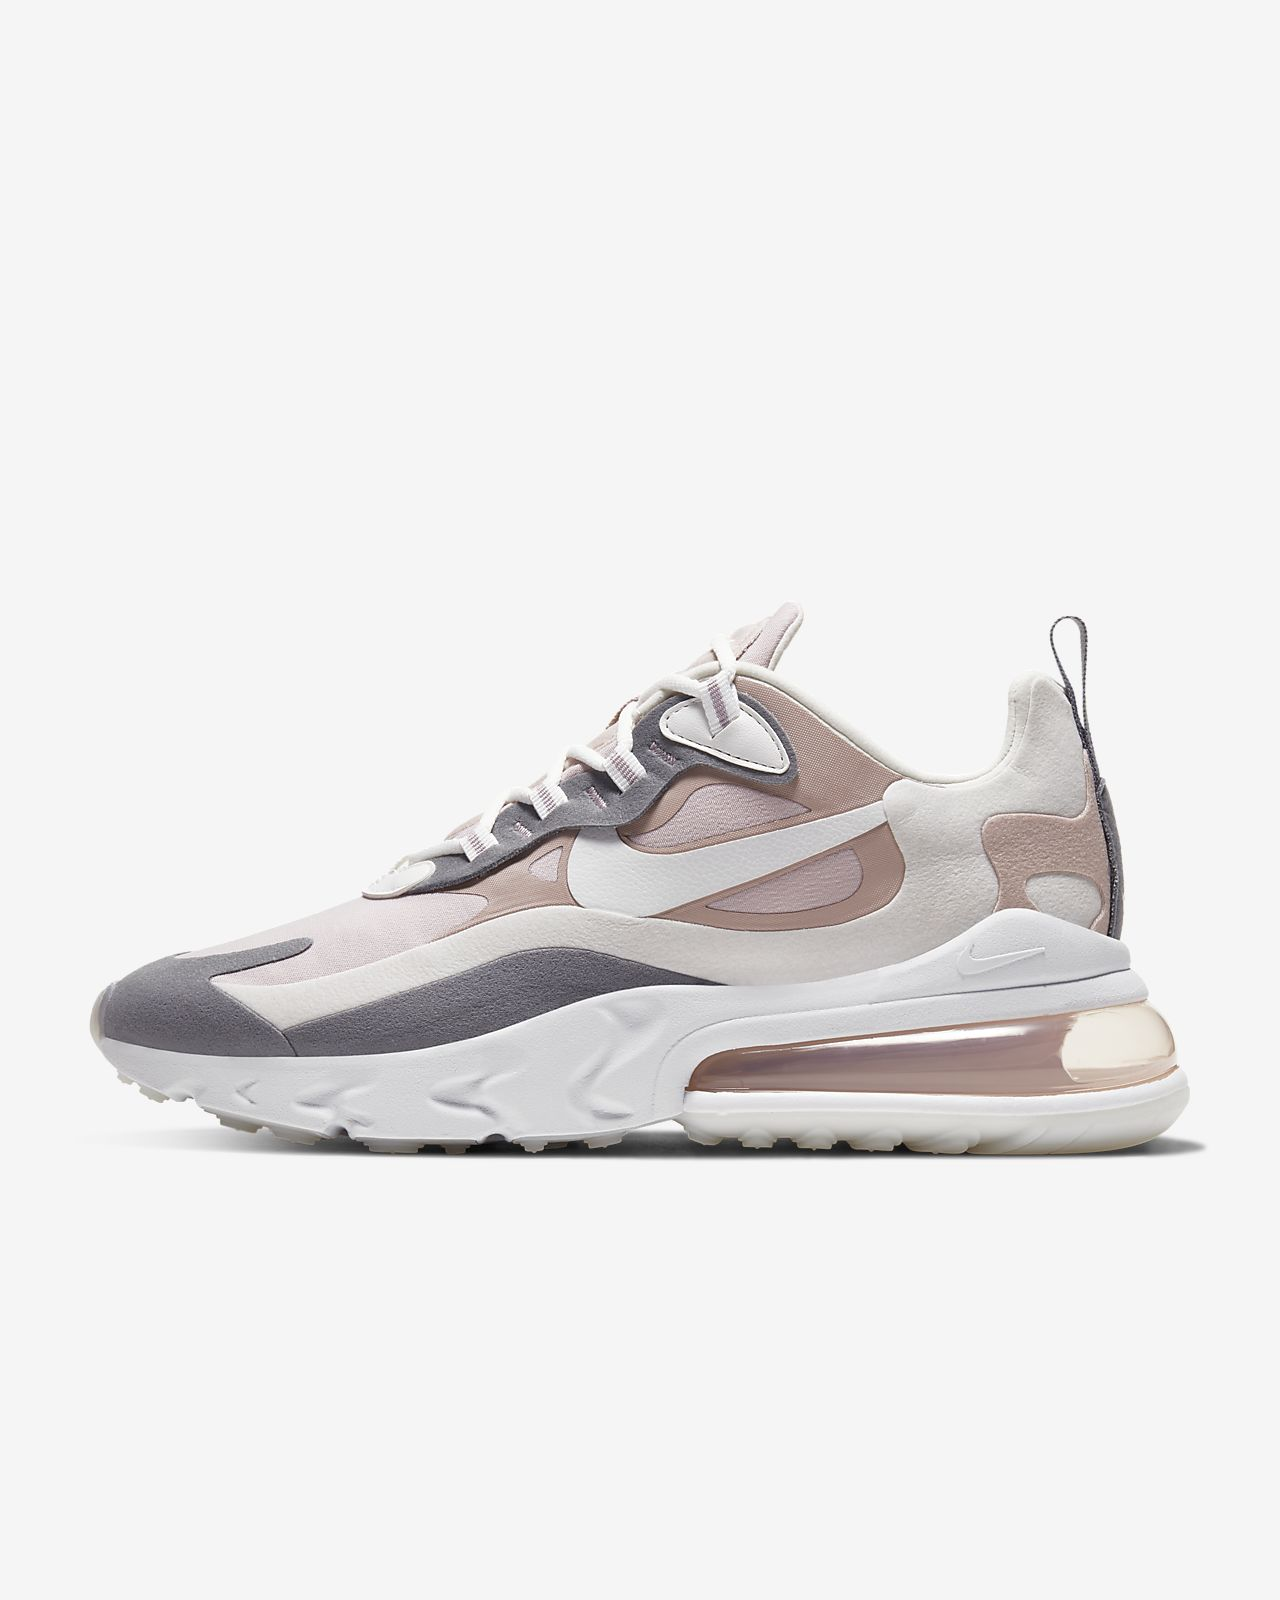 50% off classic style united states Chaussure Nike Air Max 270 React pour Femme. Nike CH